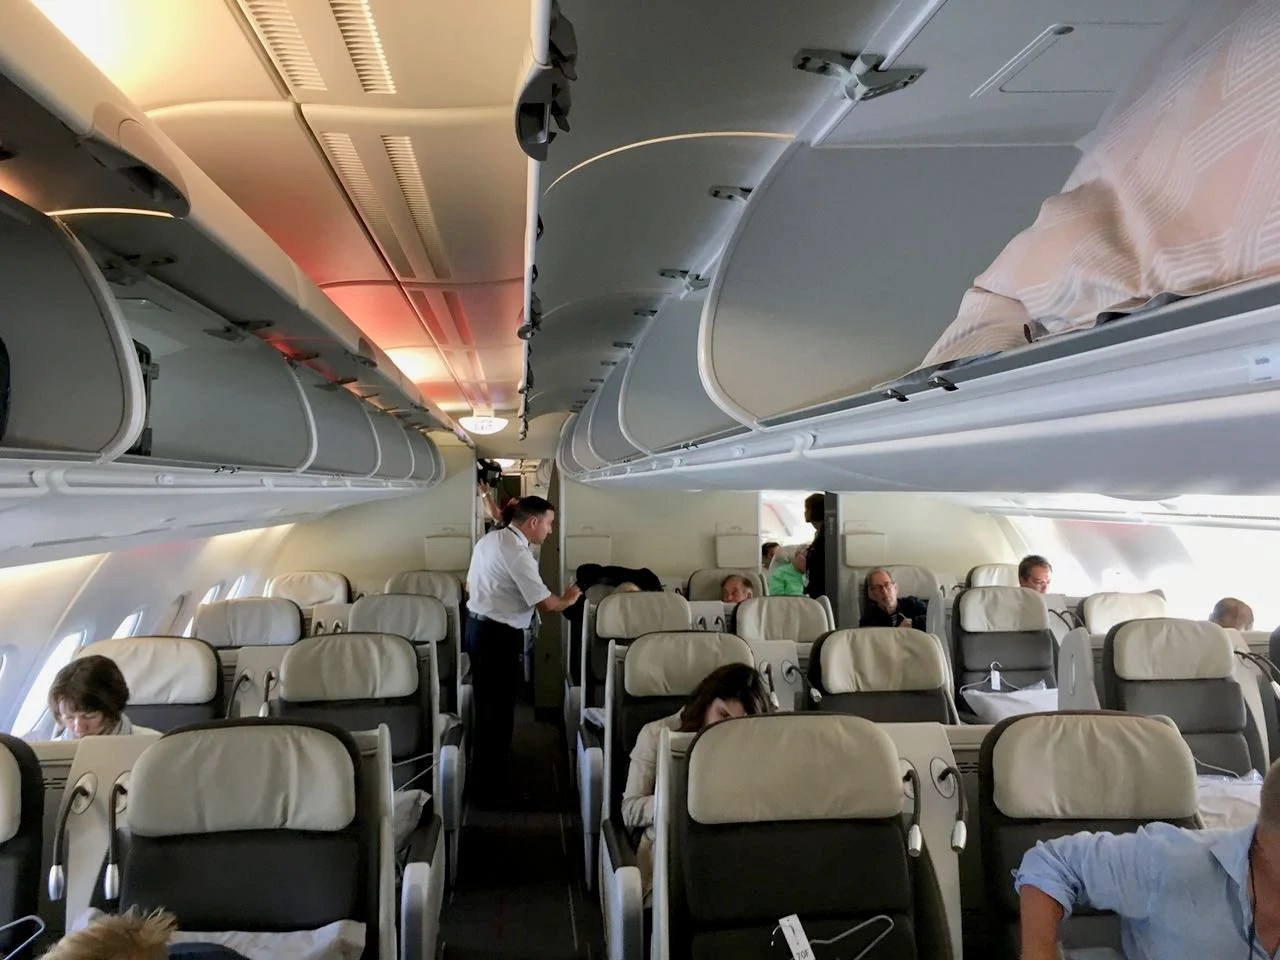 The business class cabin aboard Air France